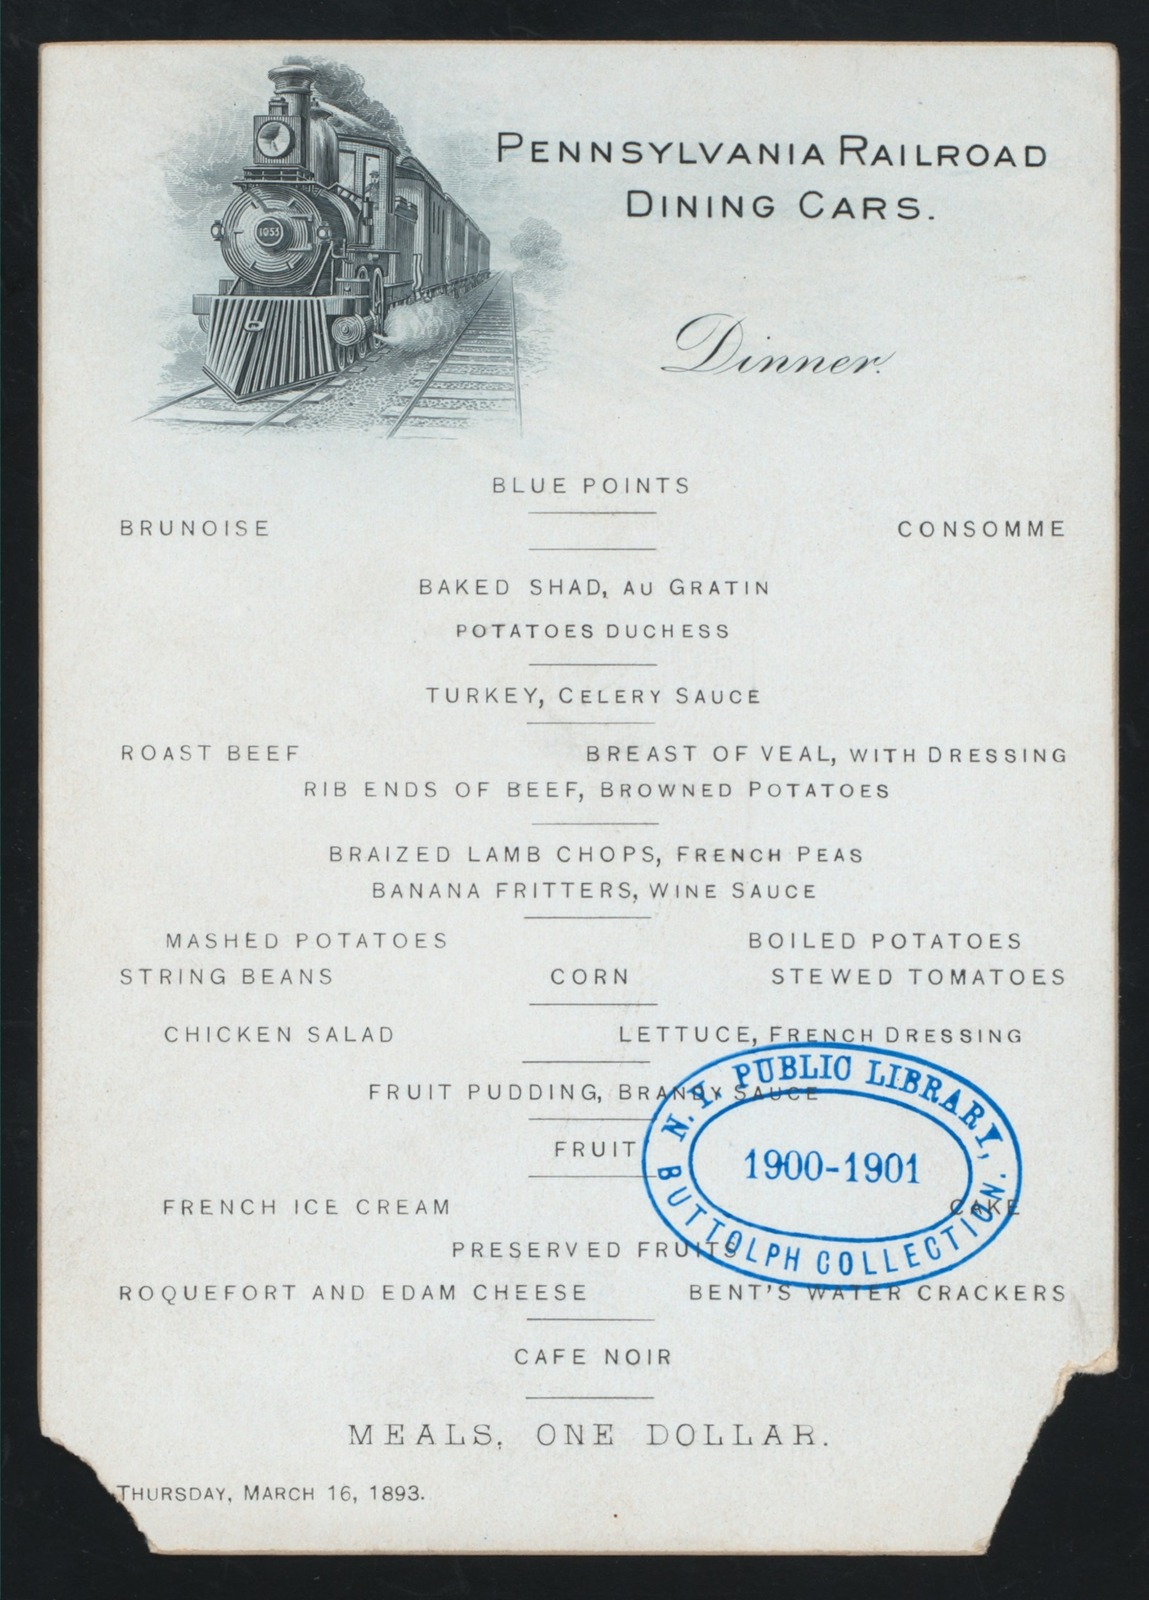 DINNER [held by] PENNSYLVANIA RR DINING CARS [at]  (RR;)